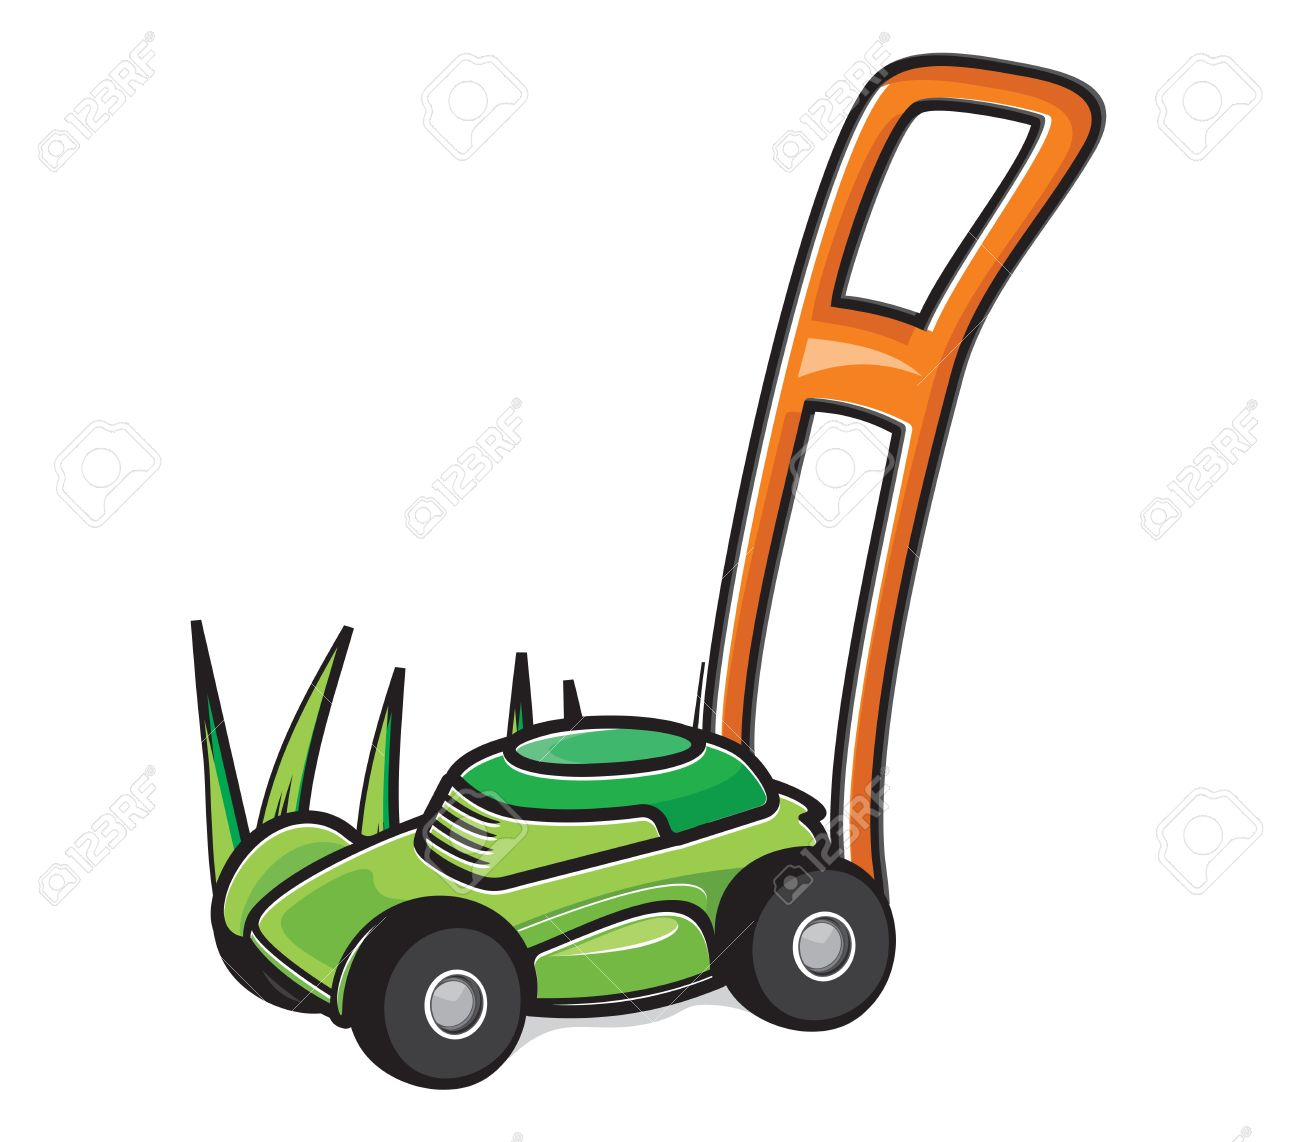 lawn mower royalty free cliparts vectors and stock illustration rh 123rf com lawn mower clipart images lawn mower clipart vector